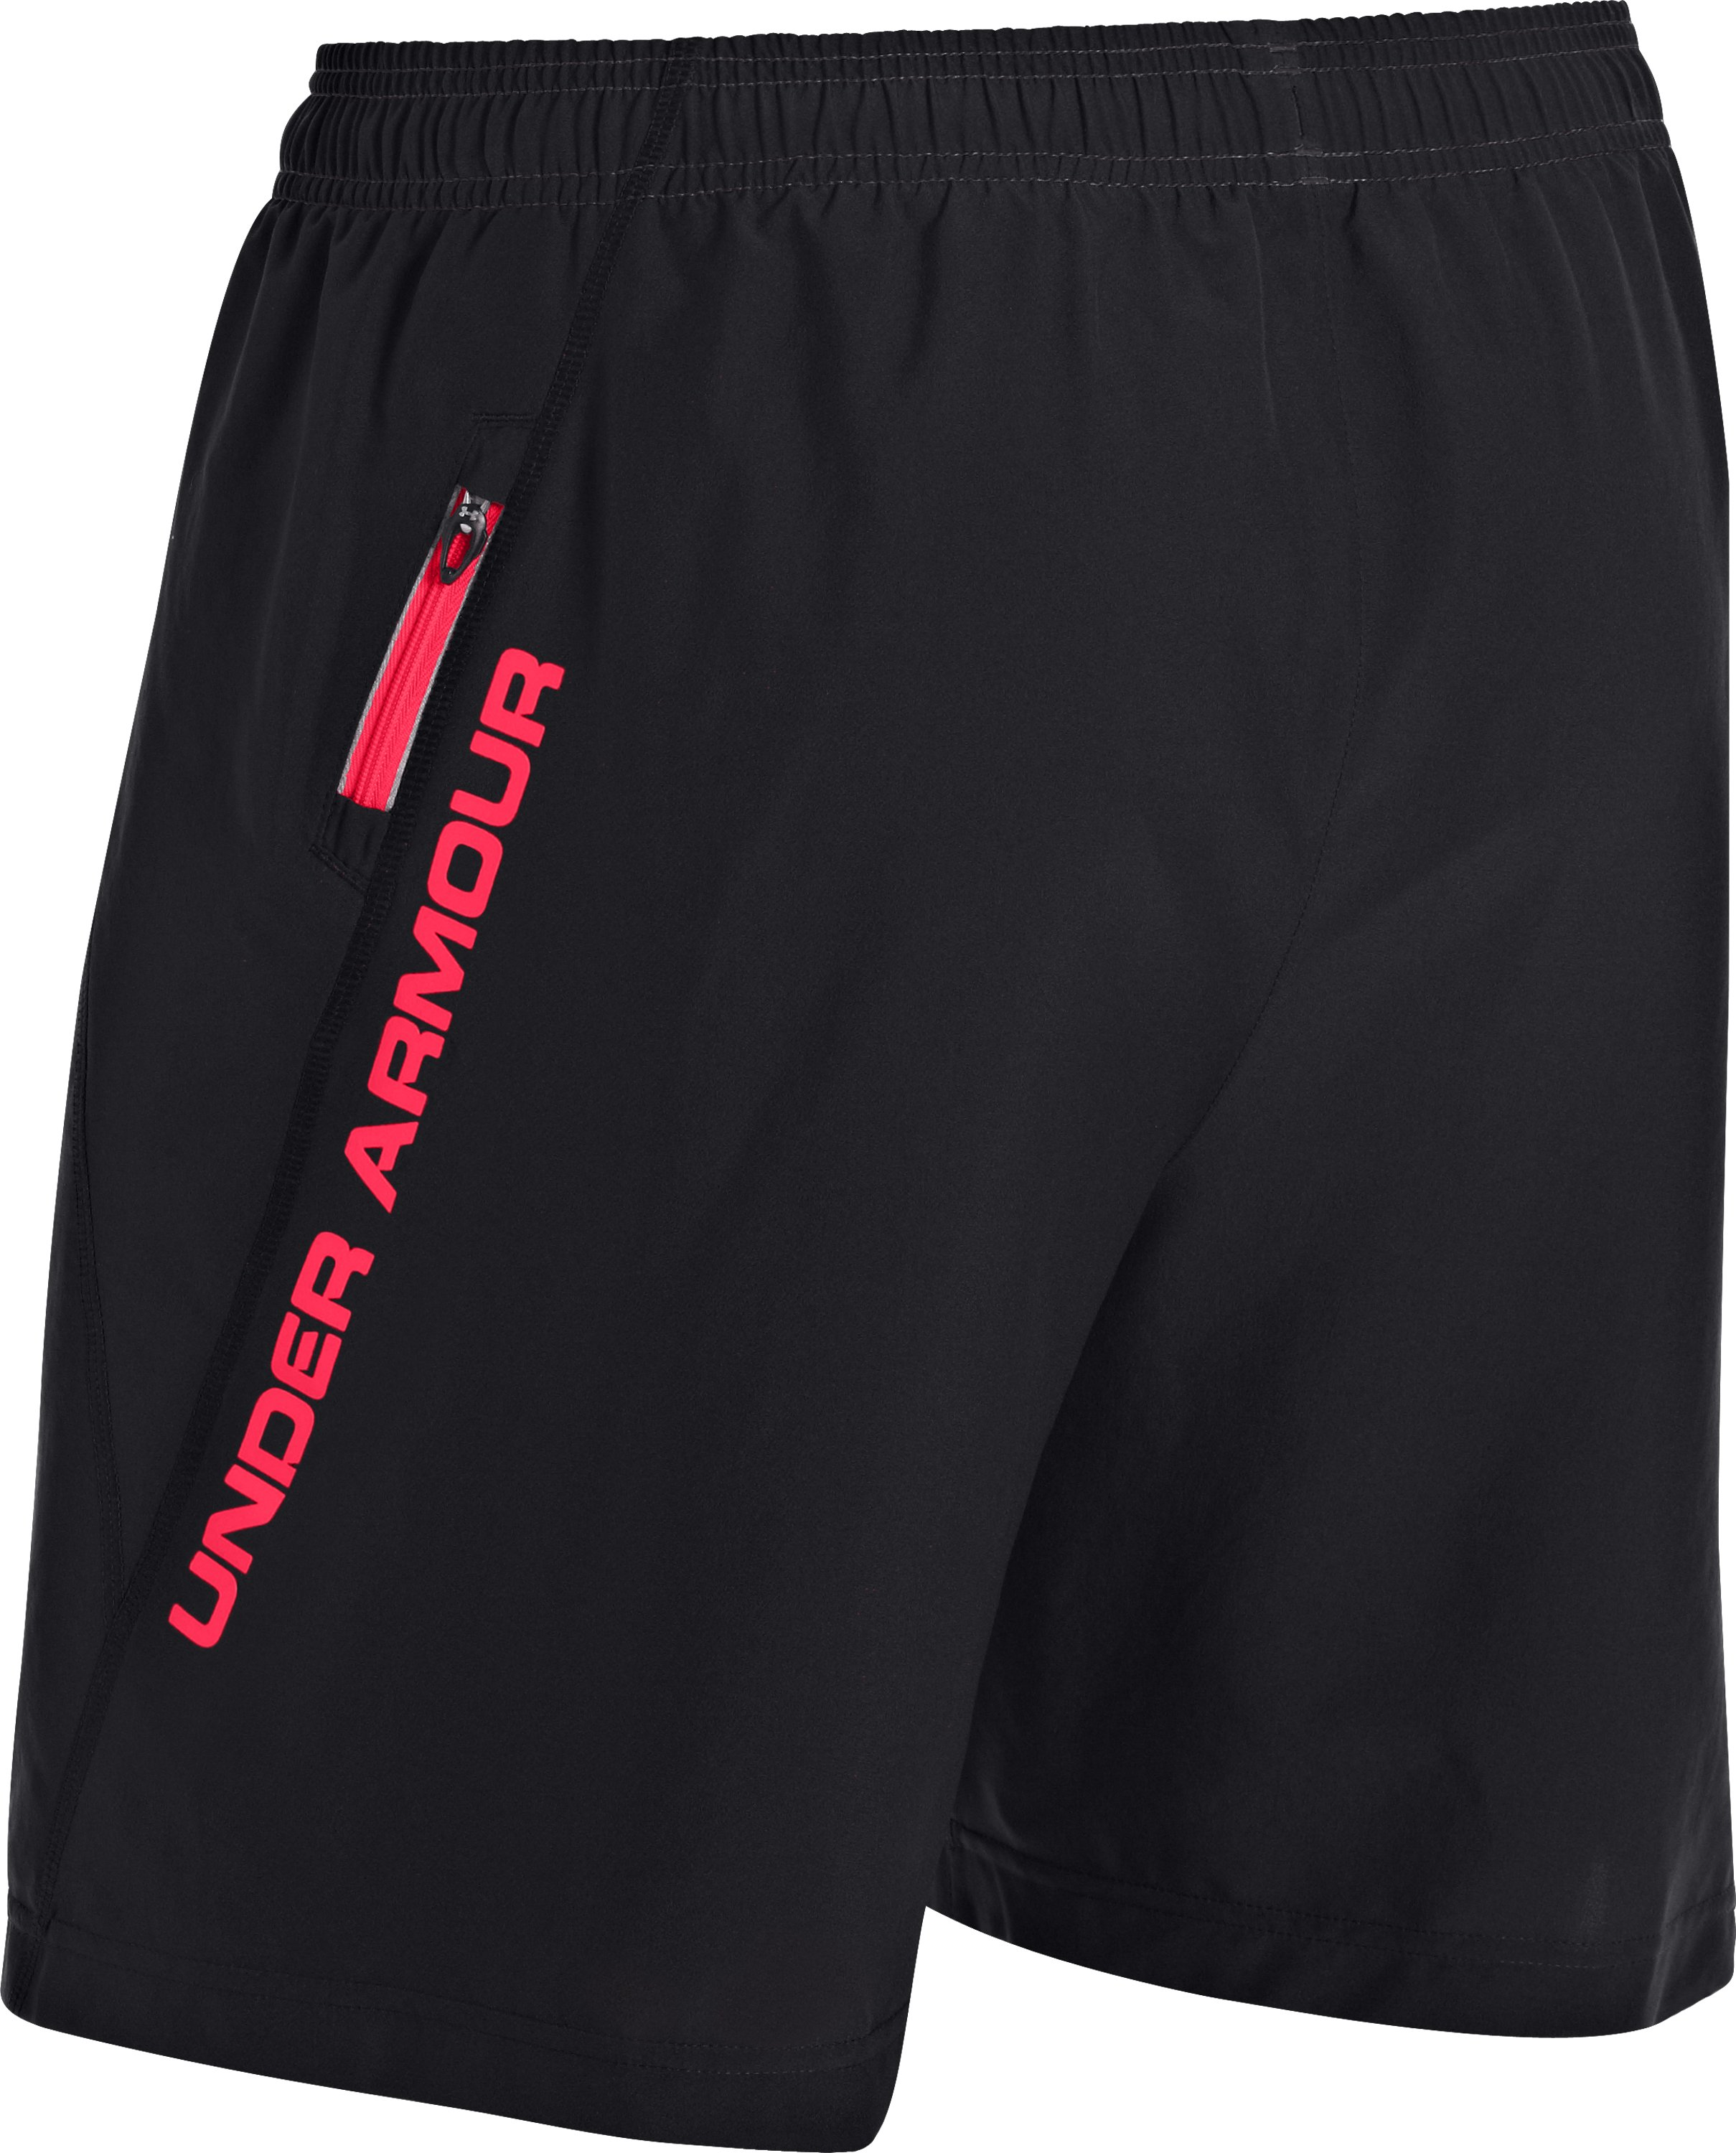 "Men's UA Run 7"" Shorts, Black"